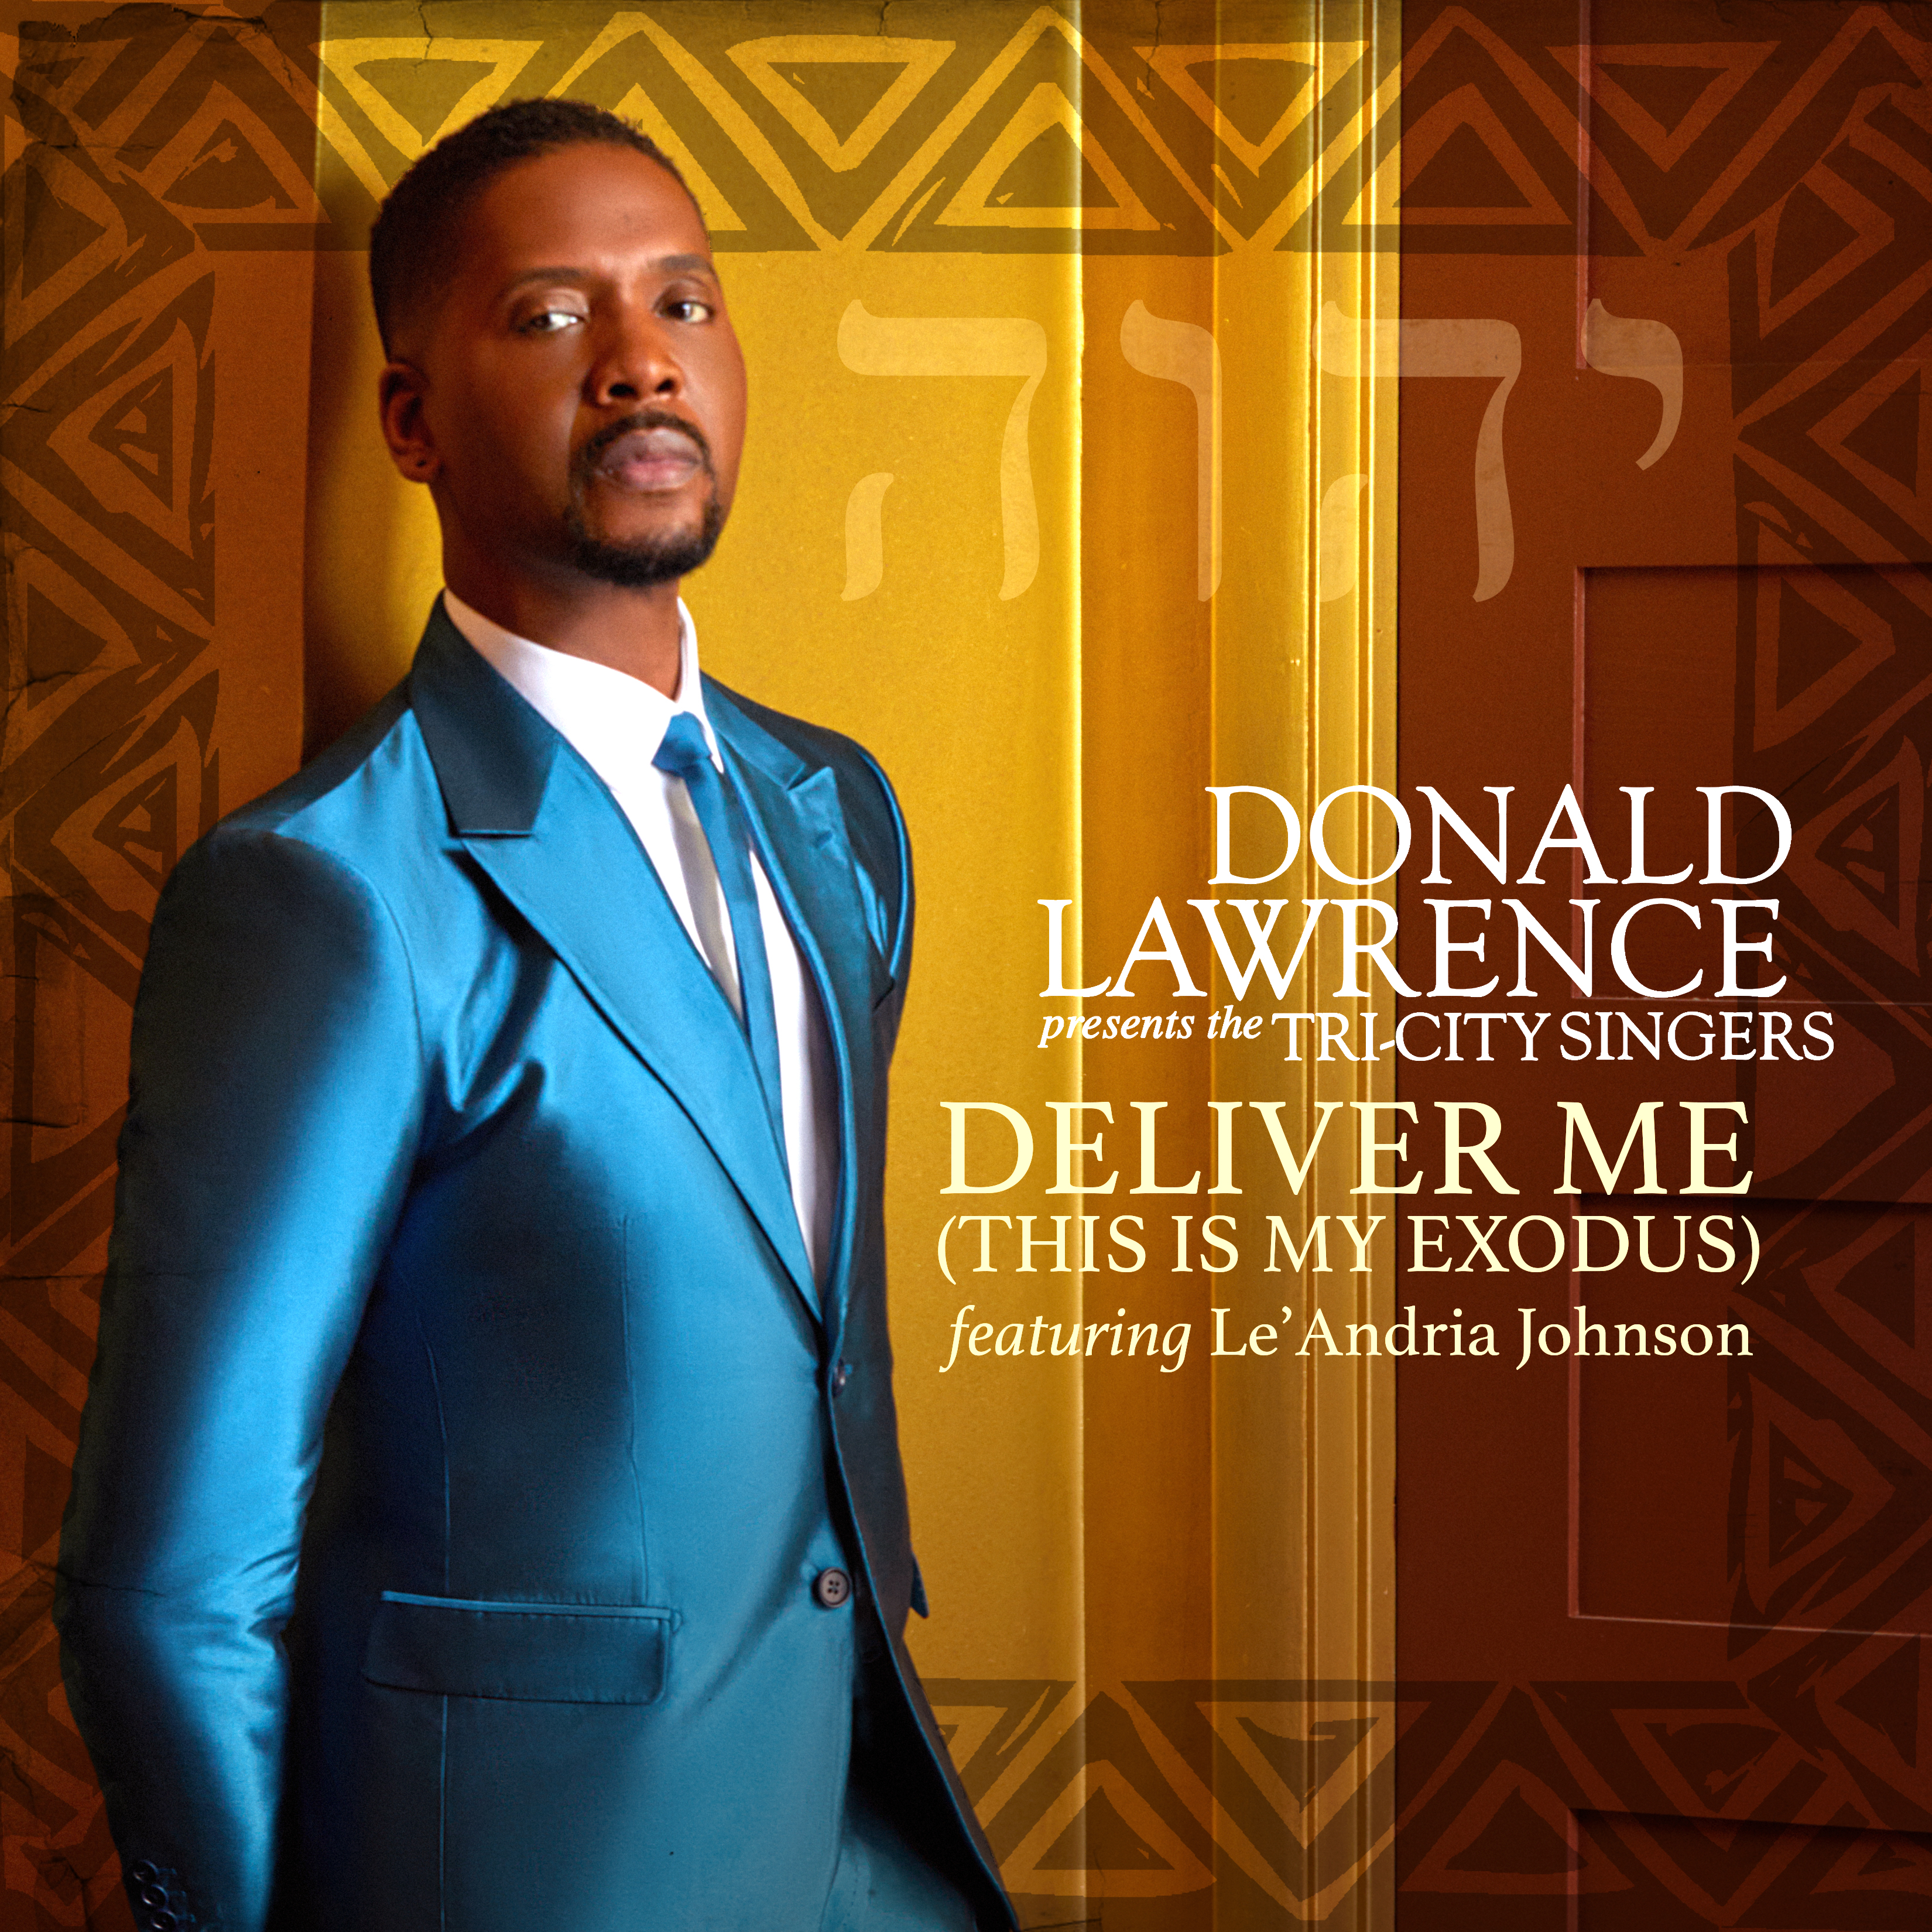 Art for Deliver Me (This Is My Exodus) by Donald Lawrence Presents The Tri-City Singers feat. Le'Andria Johnson